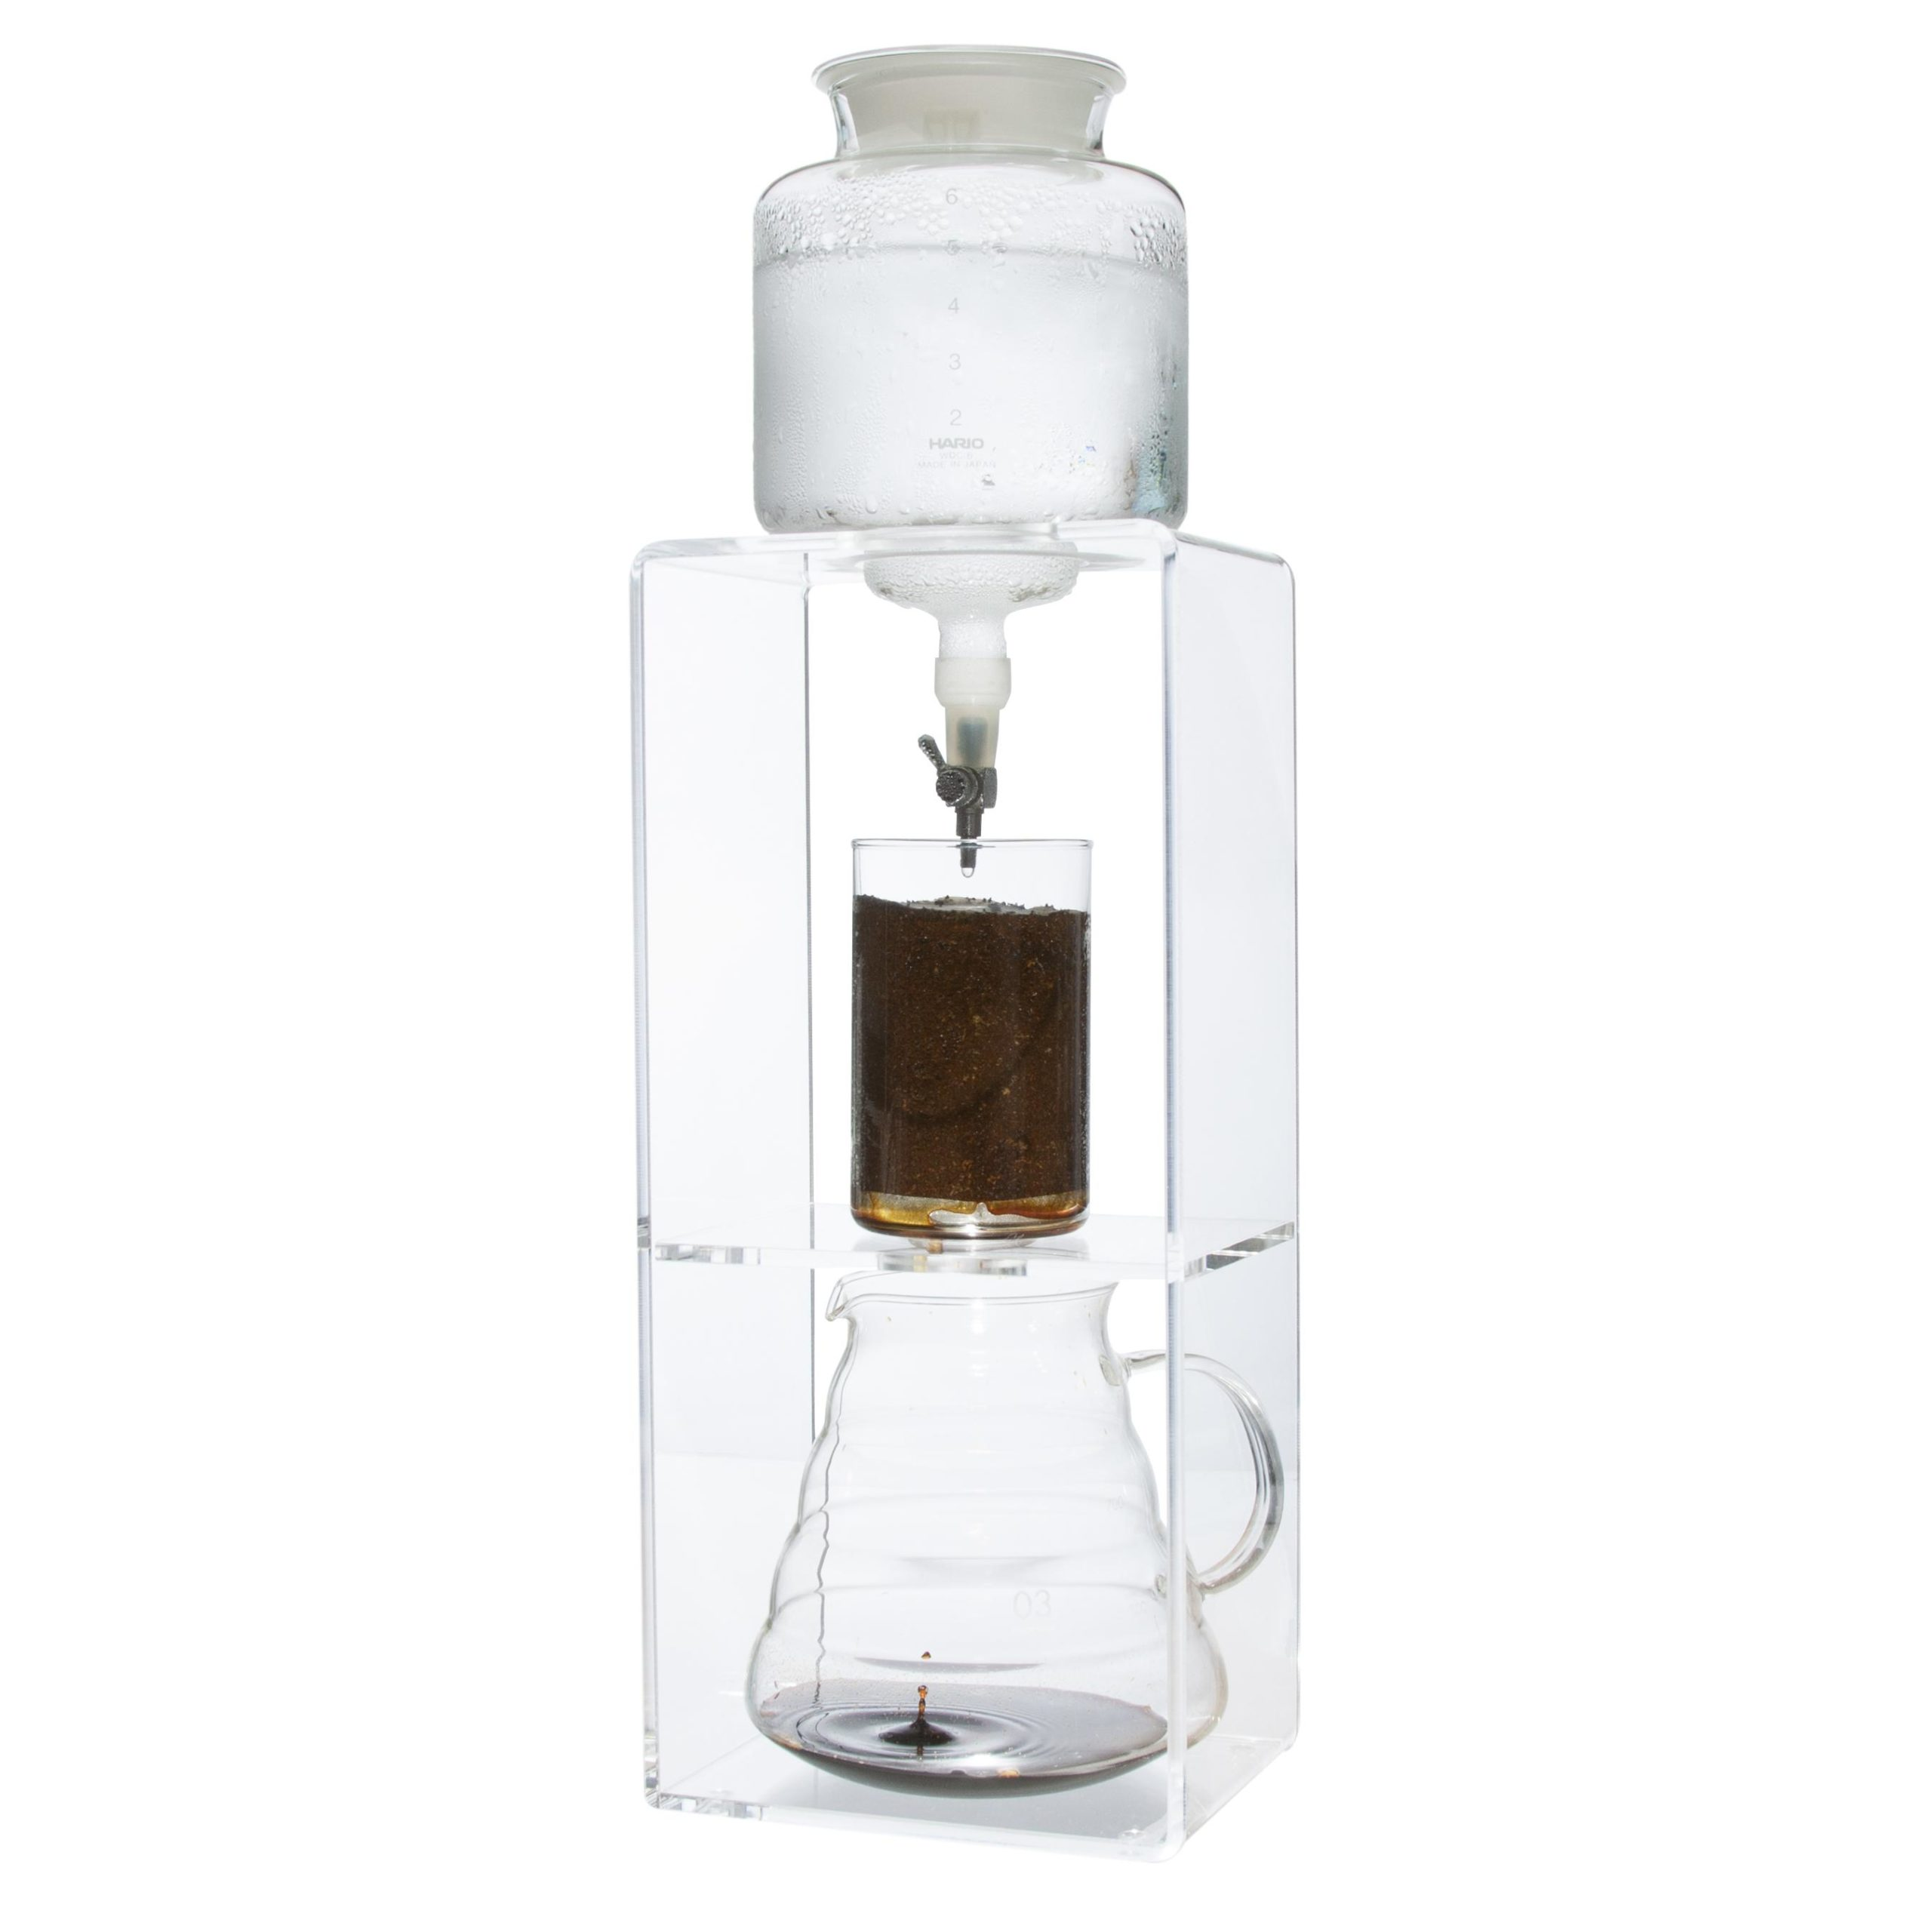 A Hario Cold Water Coffee Drip